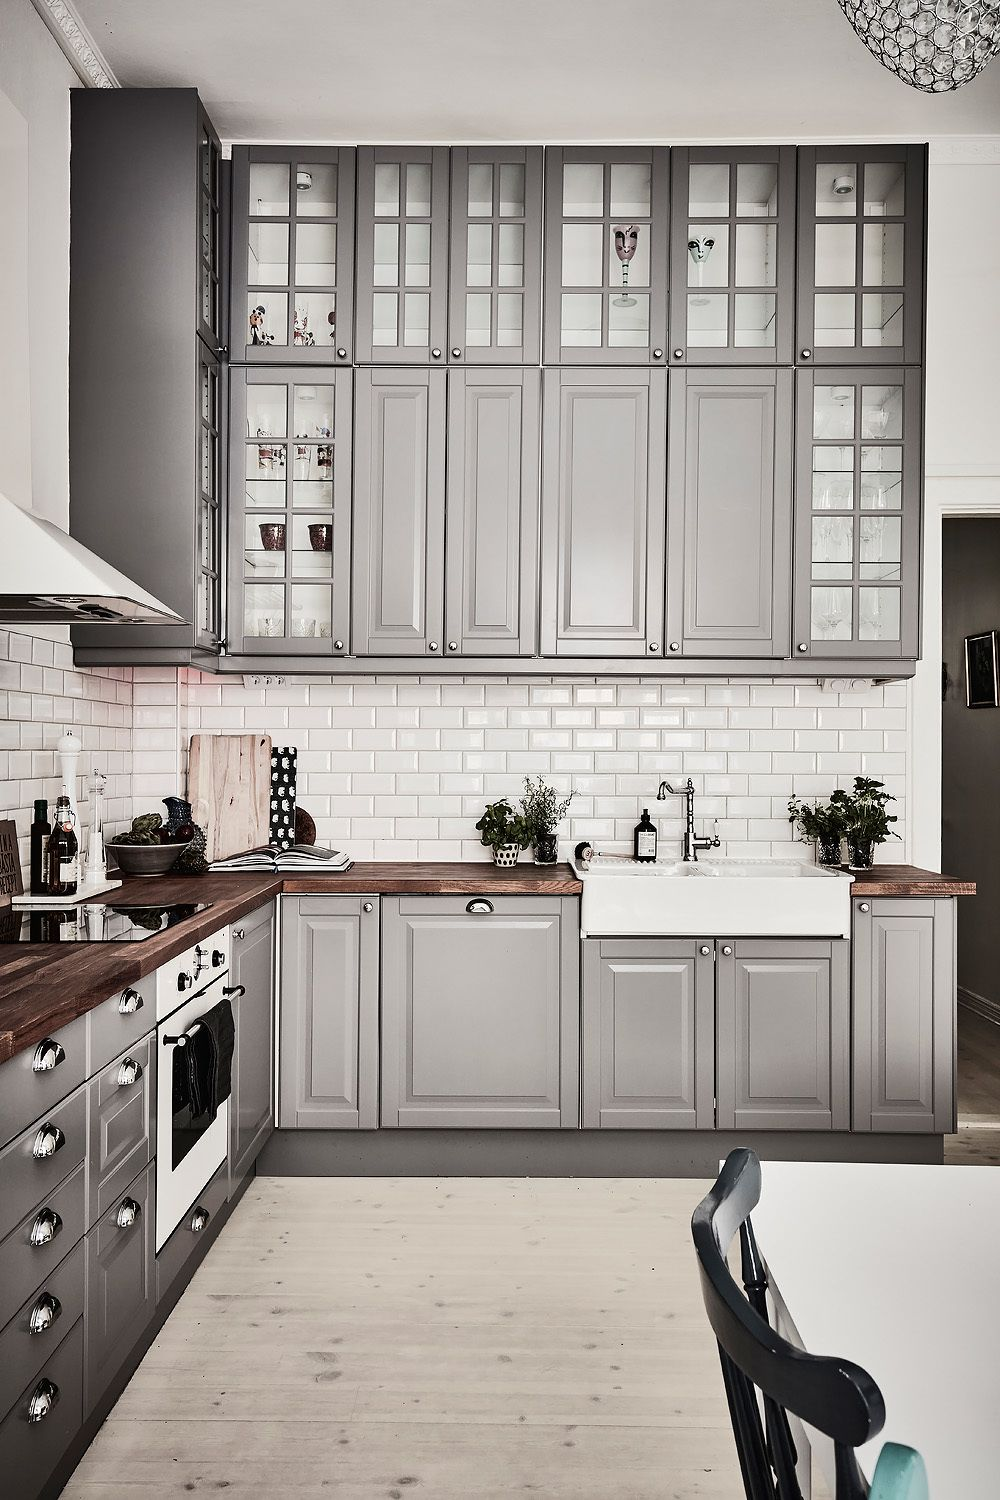 Inspiring Kitchens You Wonu0027t Believe Are IKEA Good Looking